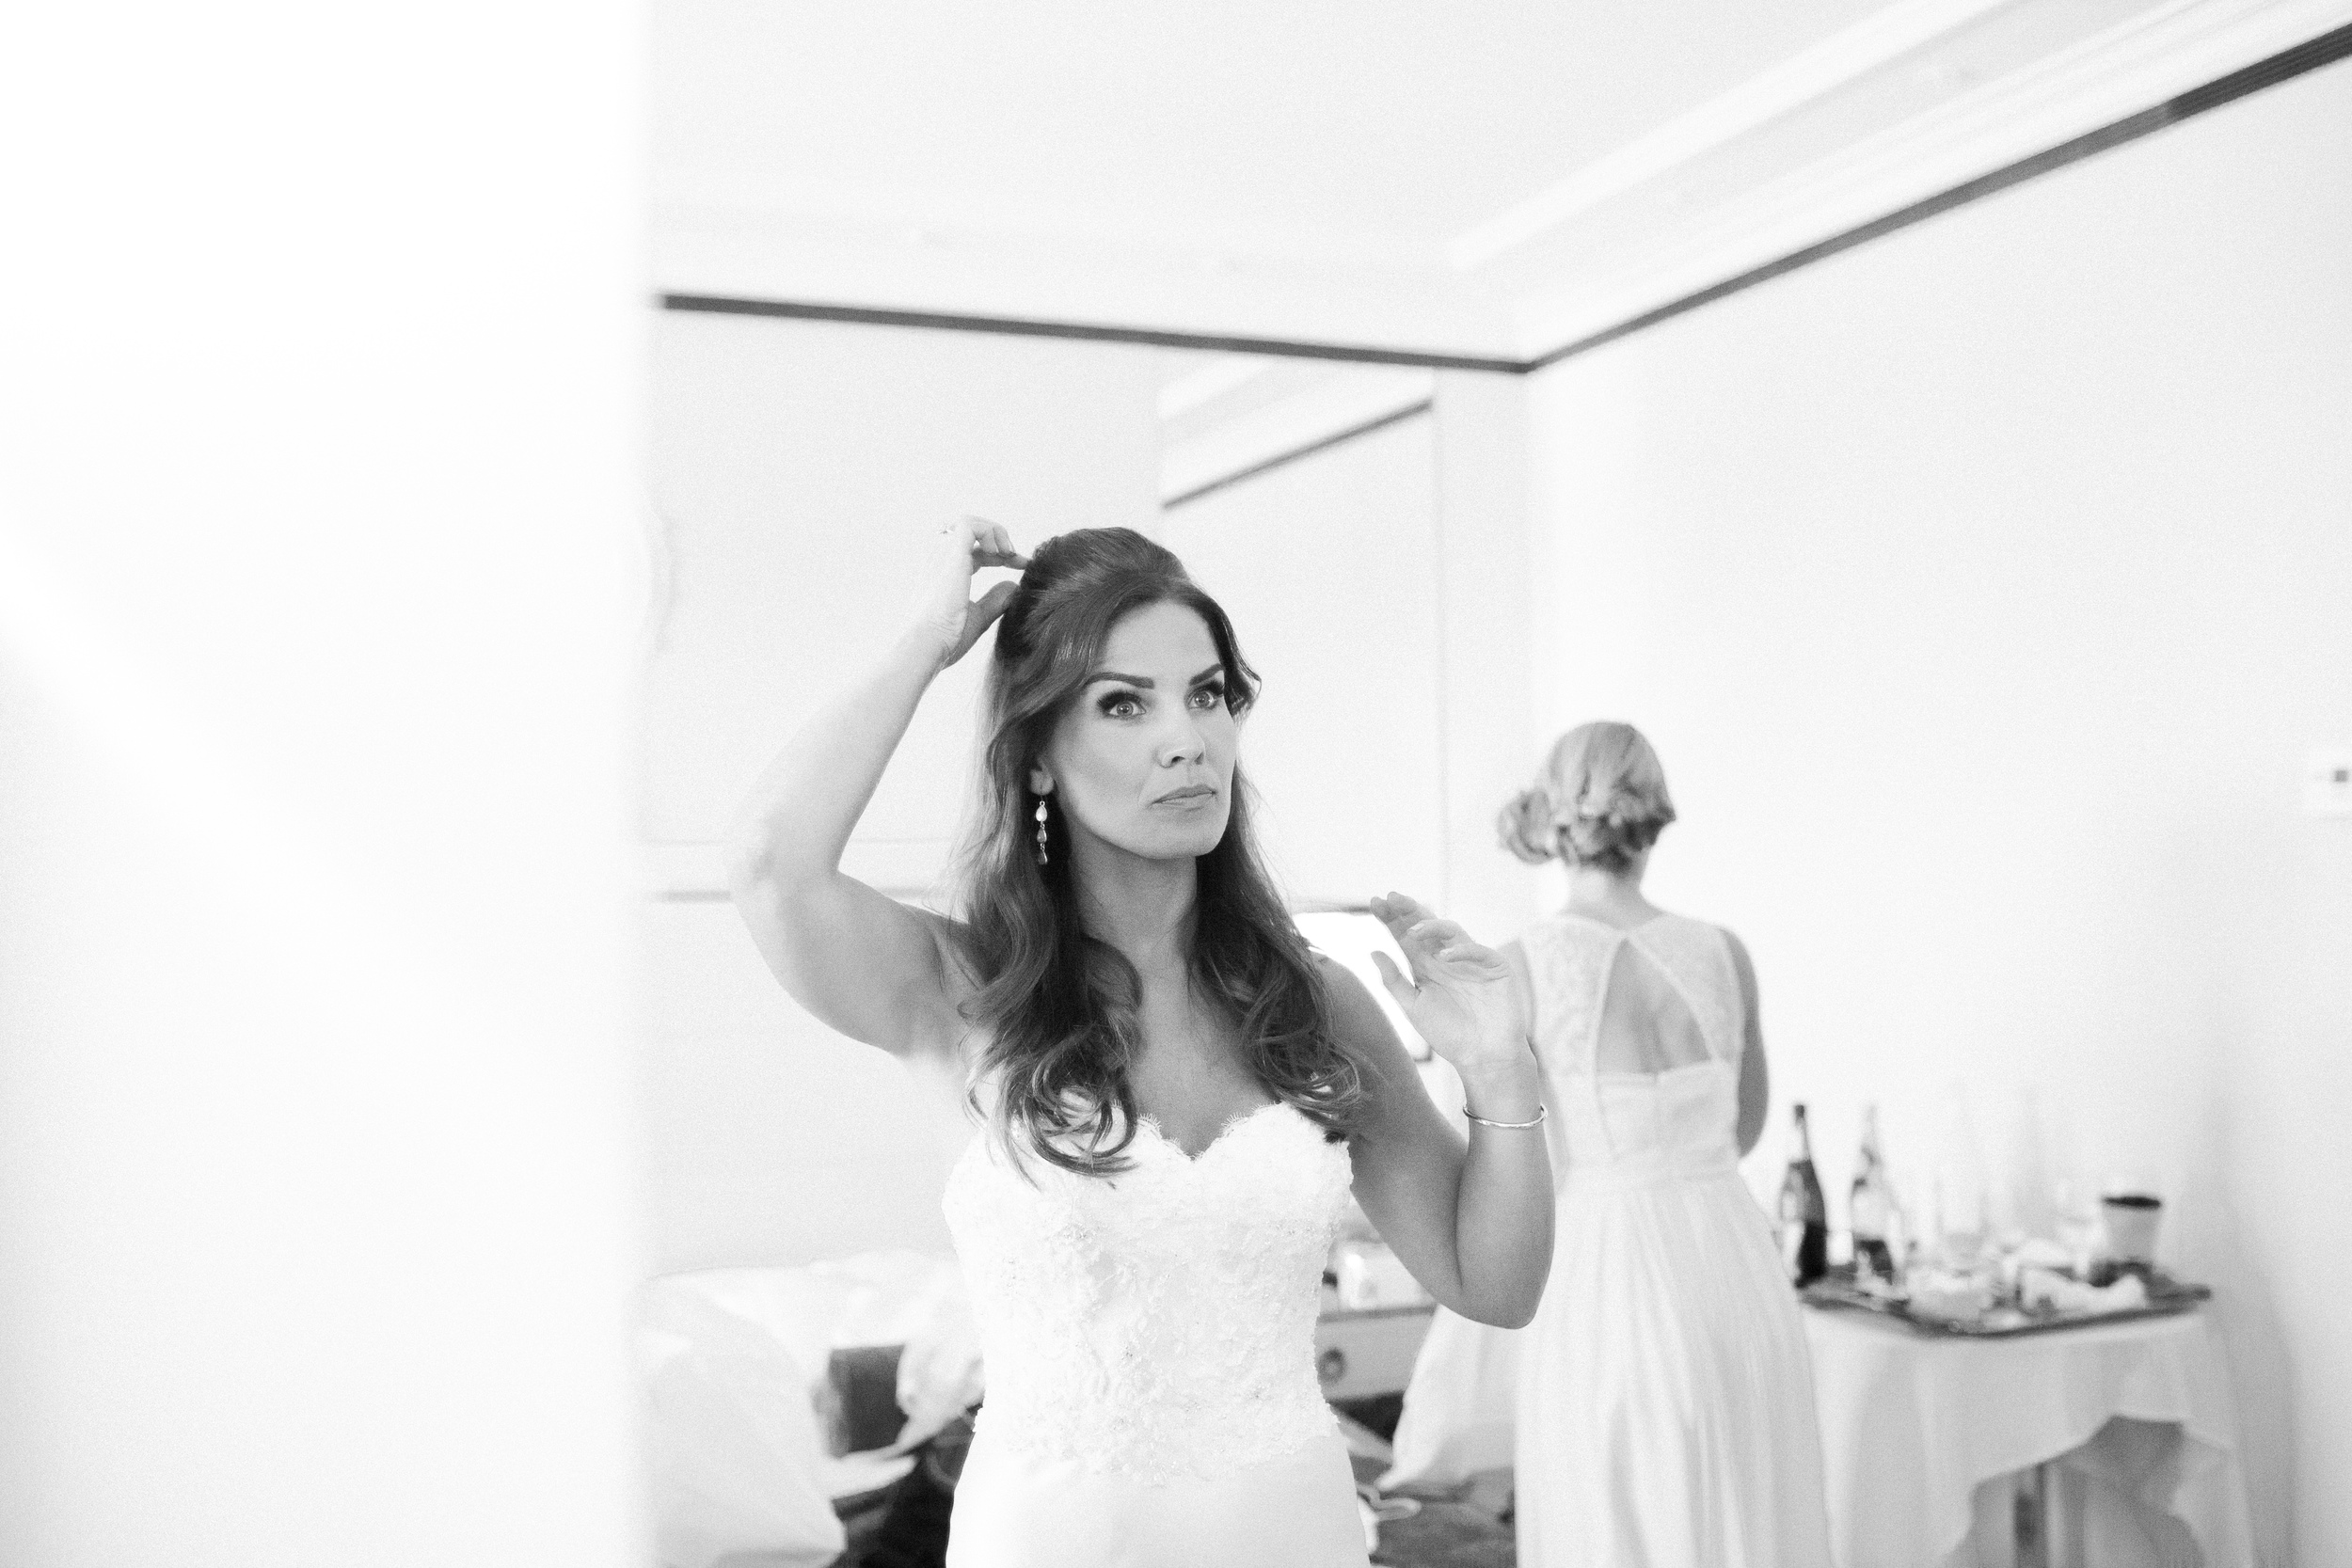 mariarao+wedding+portugal-88.jpg